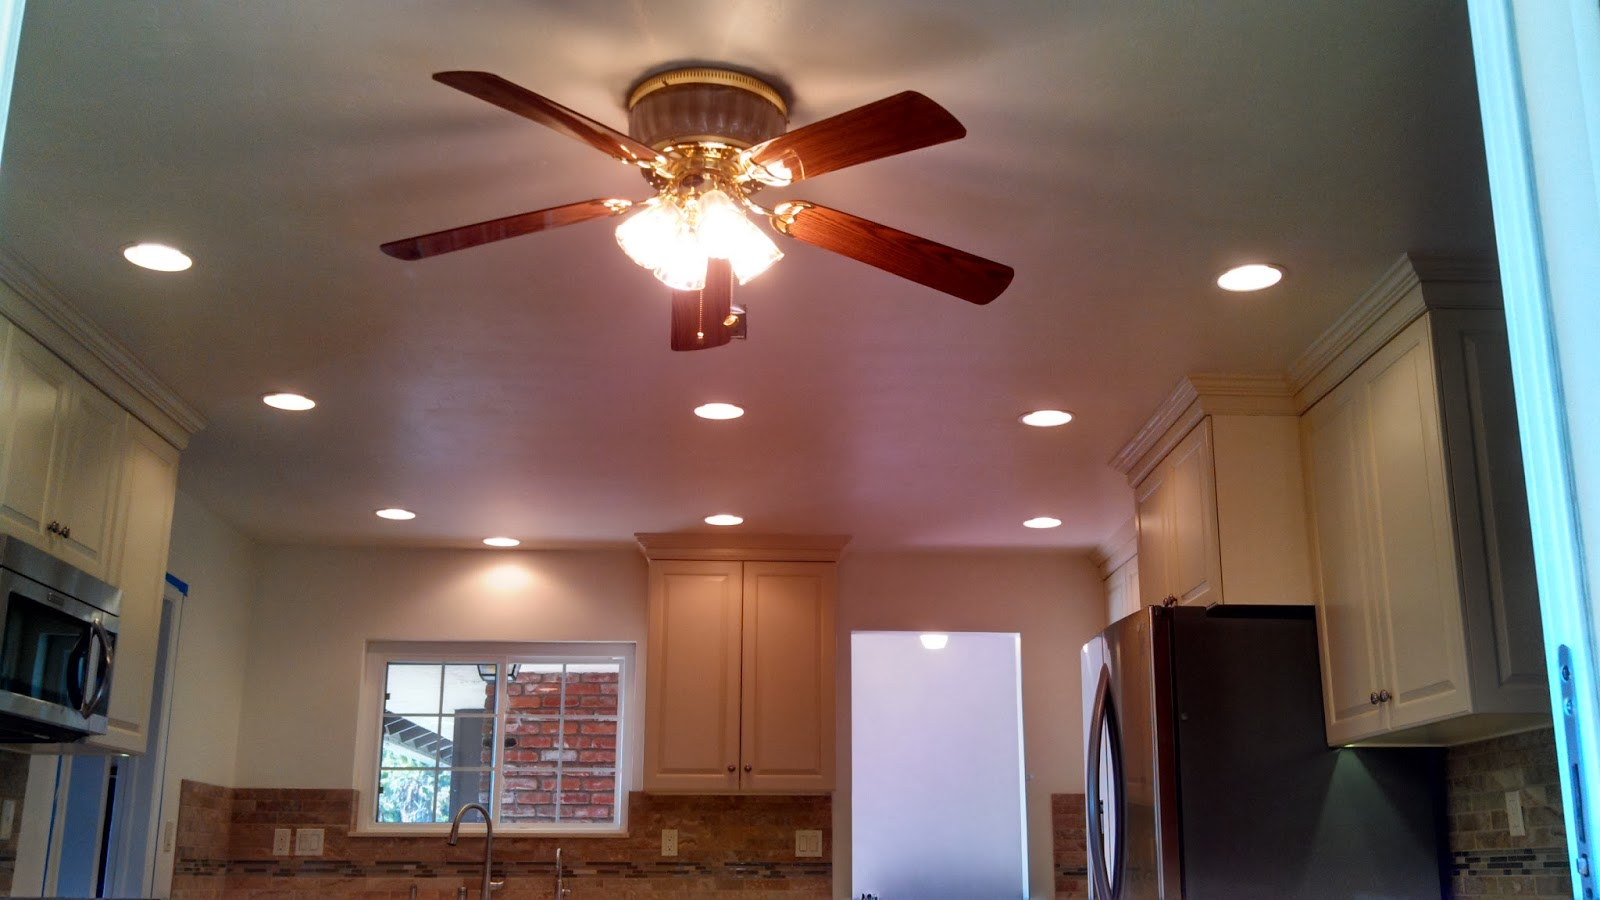 Daily Activities can lights in kitchen with enhanced lighting Install and wired 6 recess can lights to complement new kitchen layout Two seperate zones switched seperately with dimmer